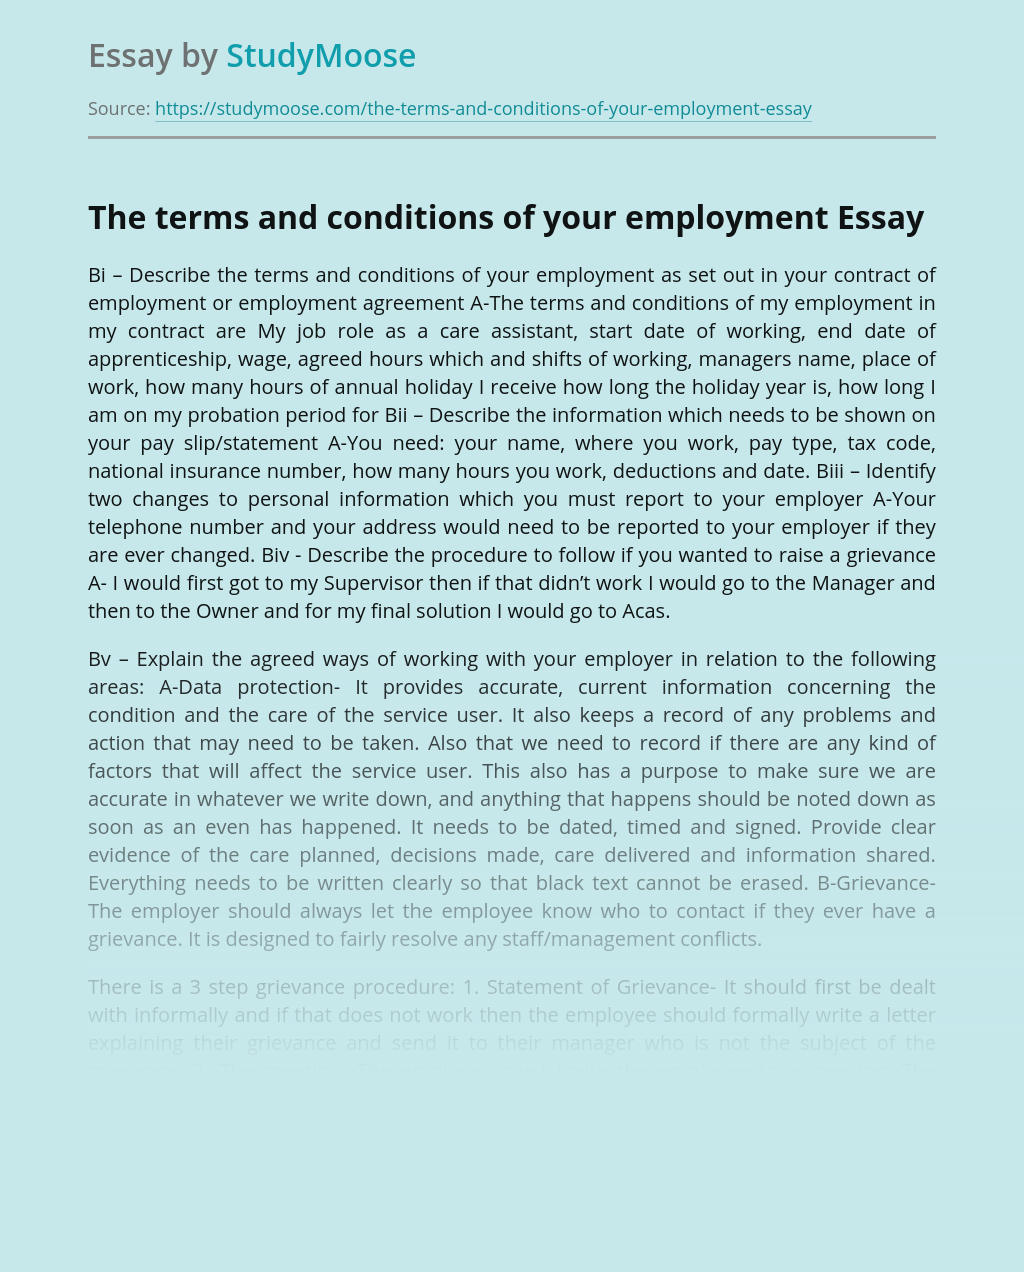 The terms and conditions of your employment